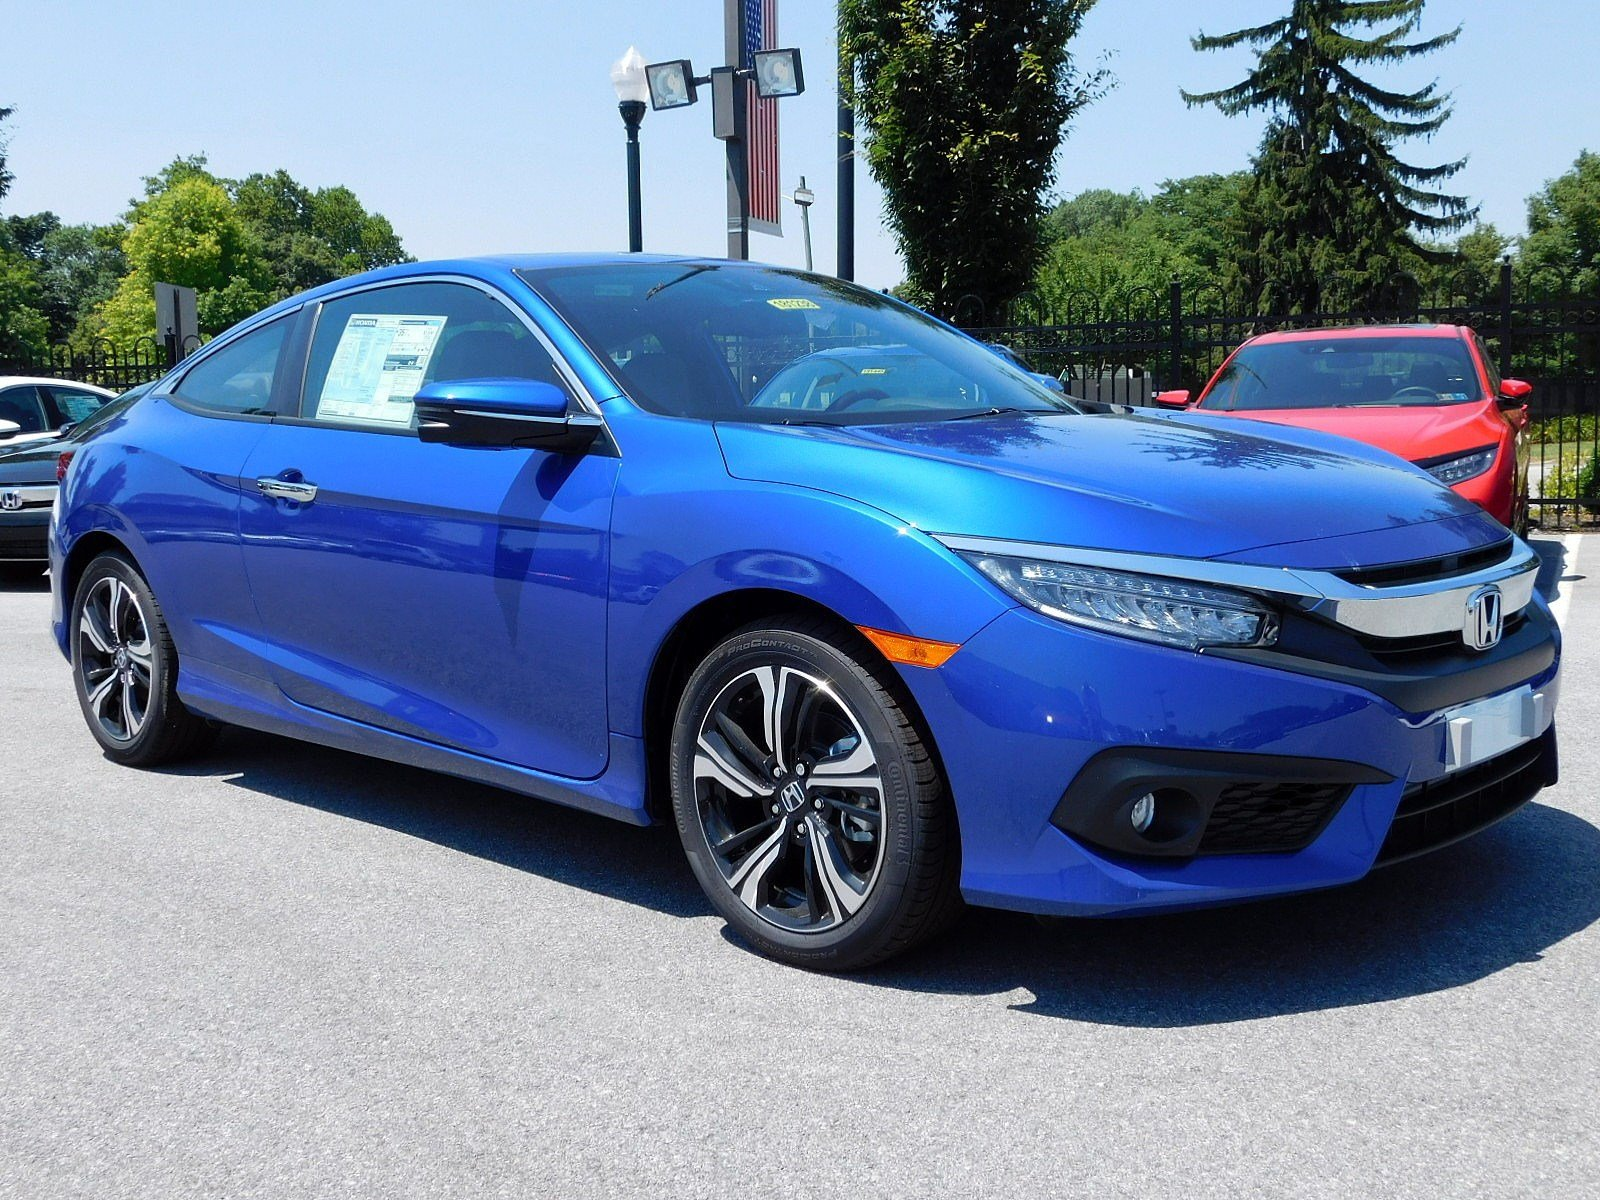 2018 Honda Civic Touring CVT 2dr Car